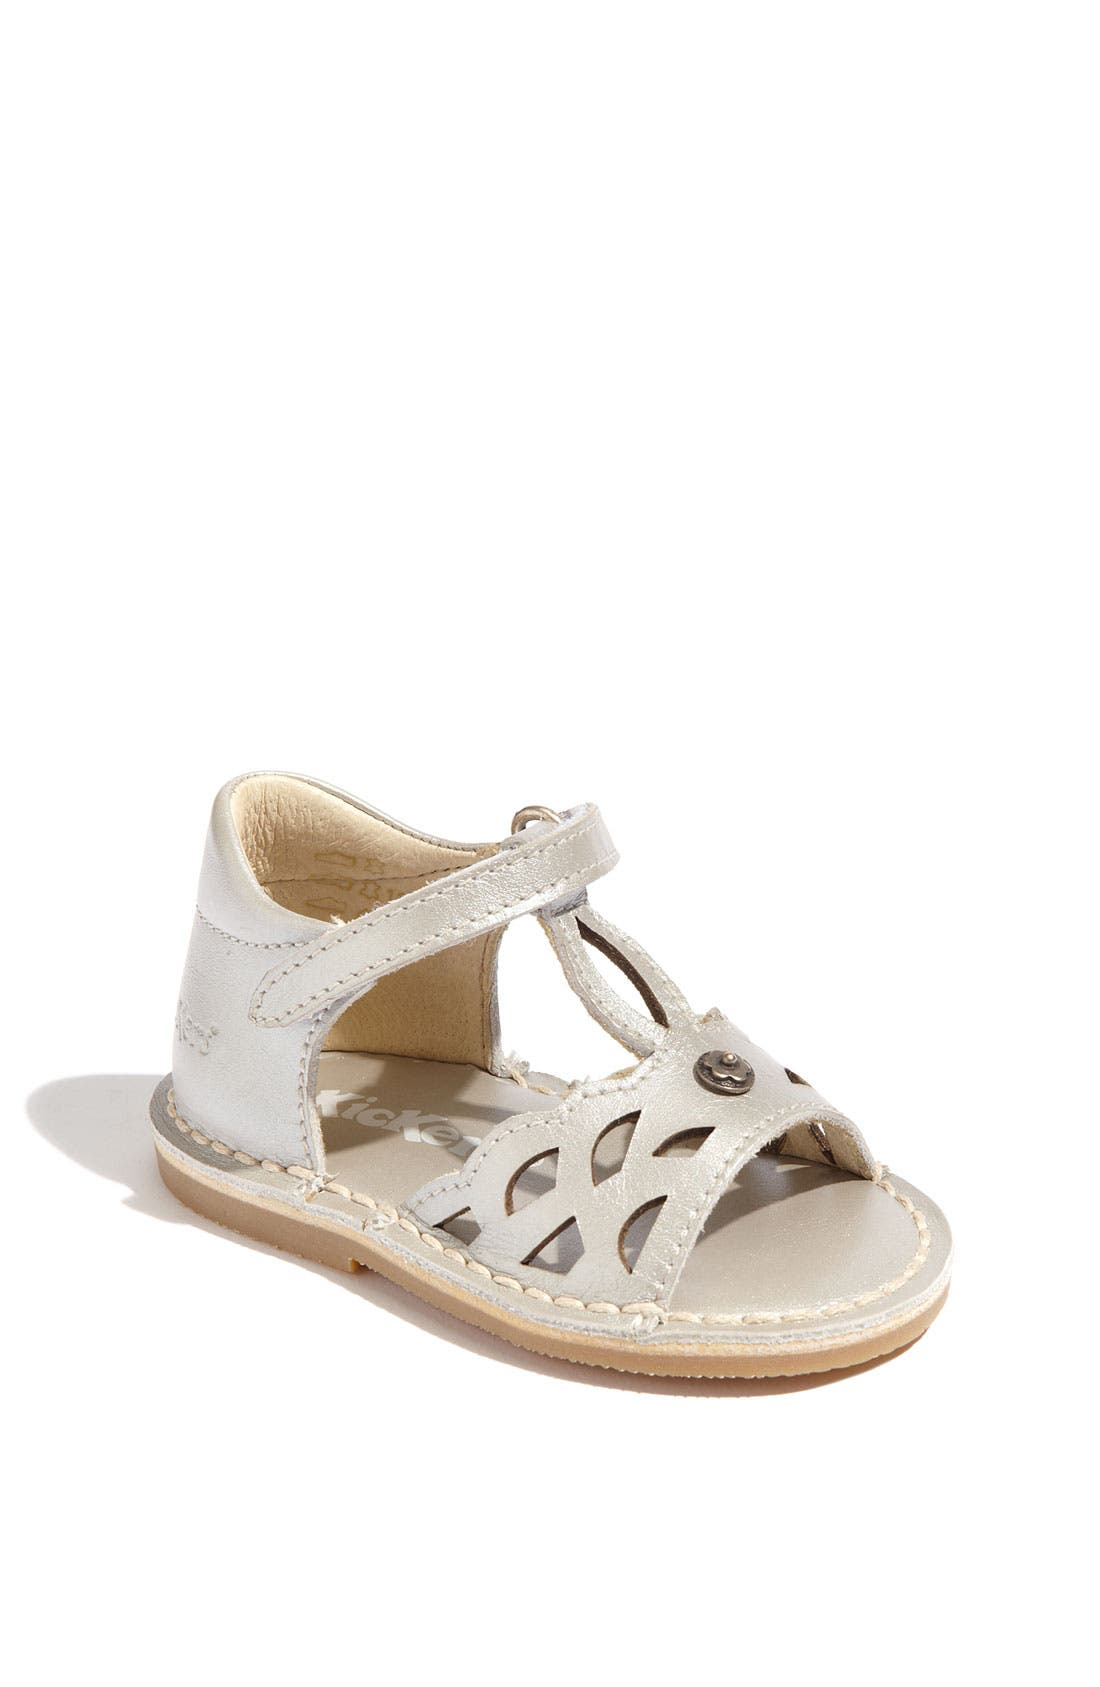 Alternate Image 1 Selected - Kickers 'Cocorico' Sandal (Baby, Walker & Toddler)